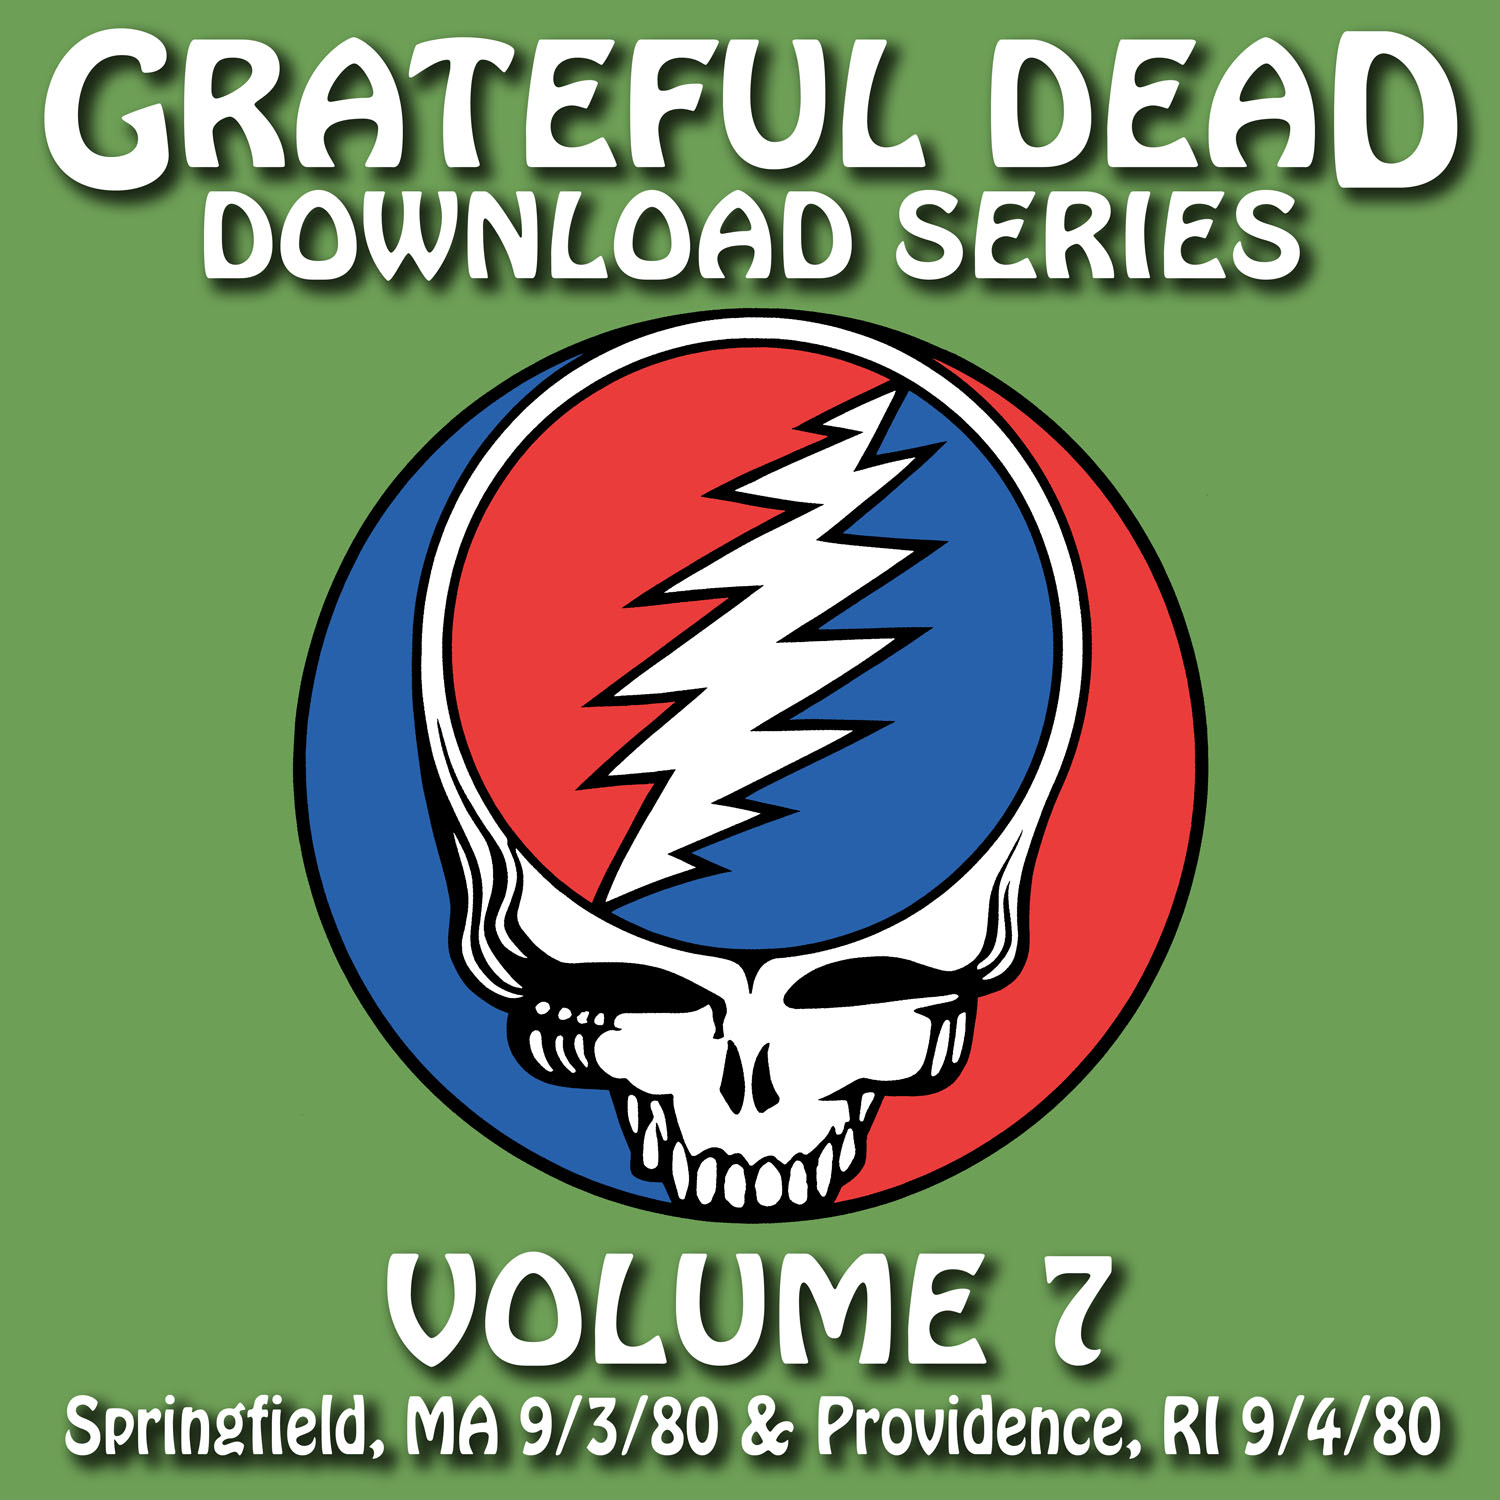 Grateful Dead Download Series 7 album cover artwork